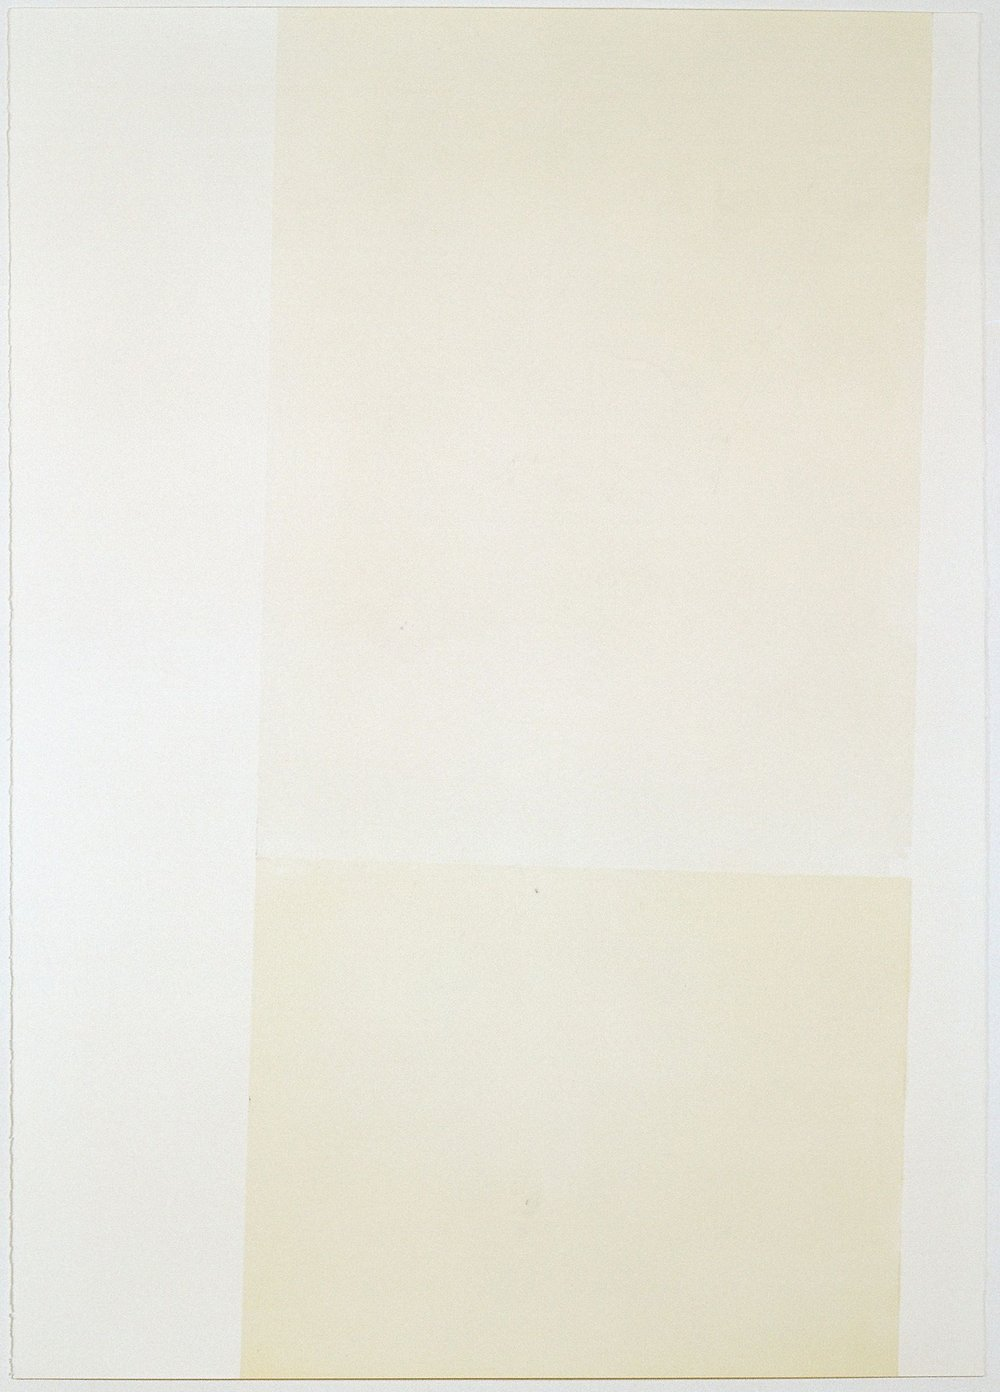 Two Thirds , Monotype On Fabriano Rosaspina, 70x100cm, 2014